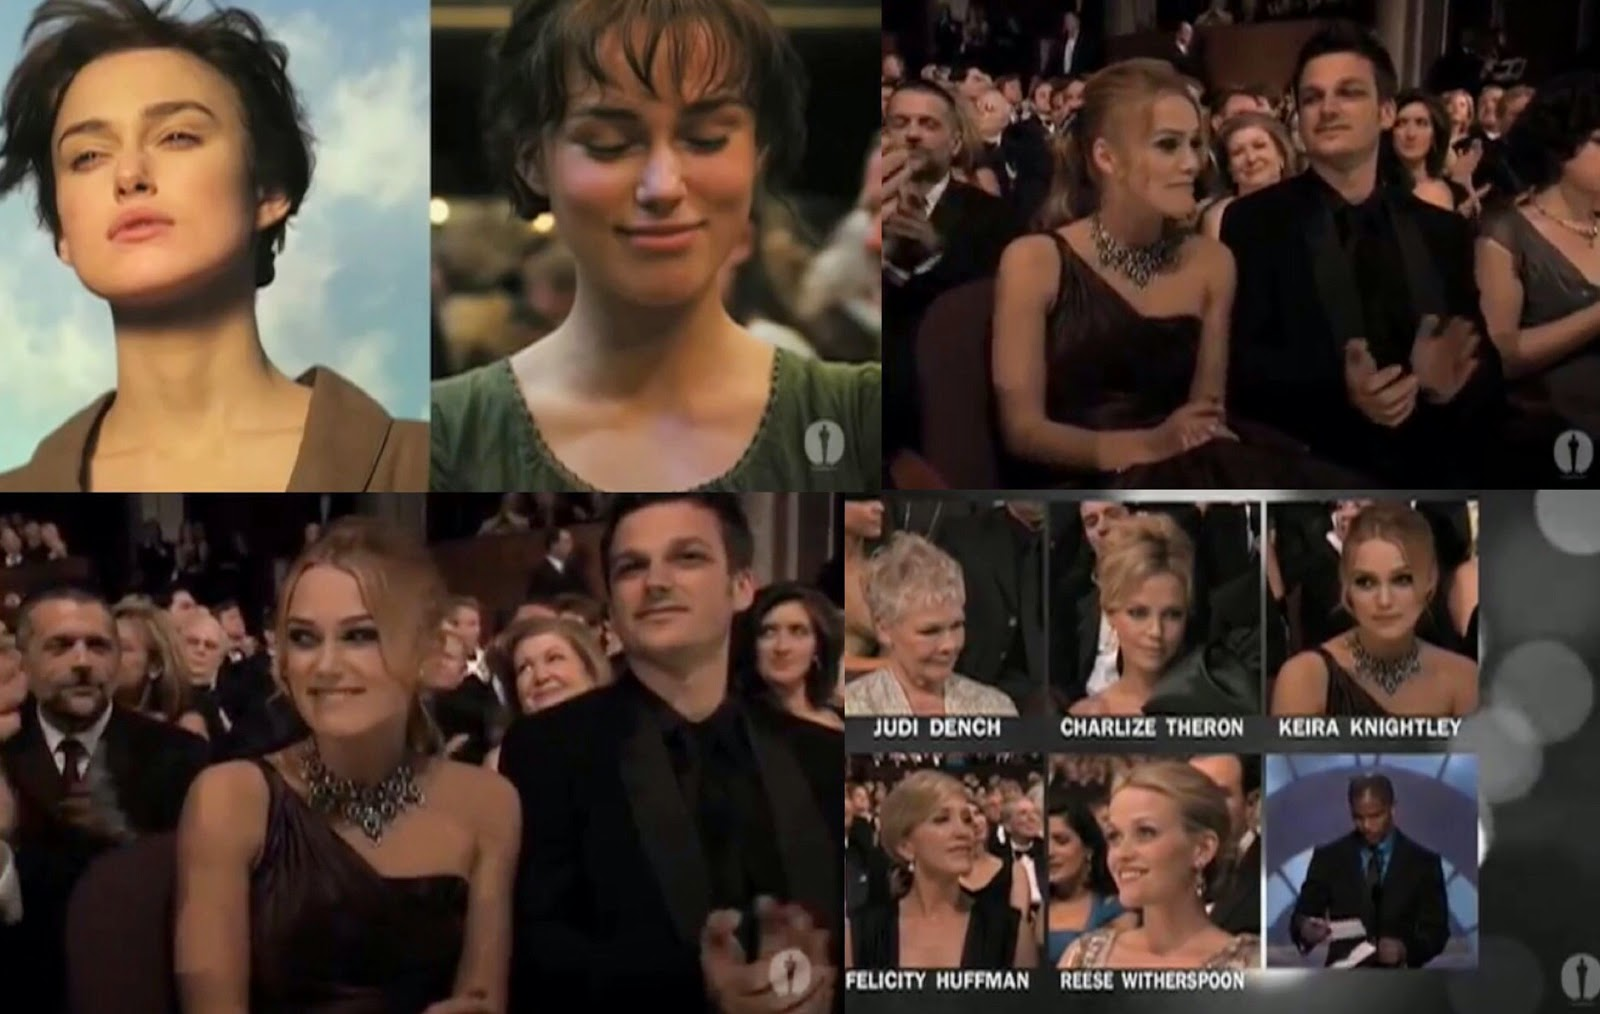 Watch Clips Of Keiras Brief Nomination Parts During The 78th Academy Awards 2006